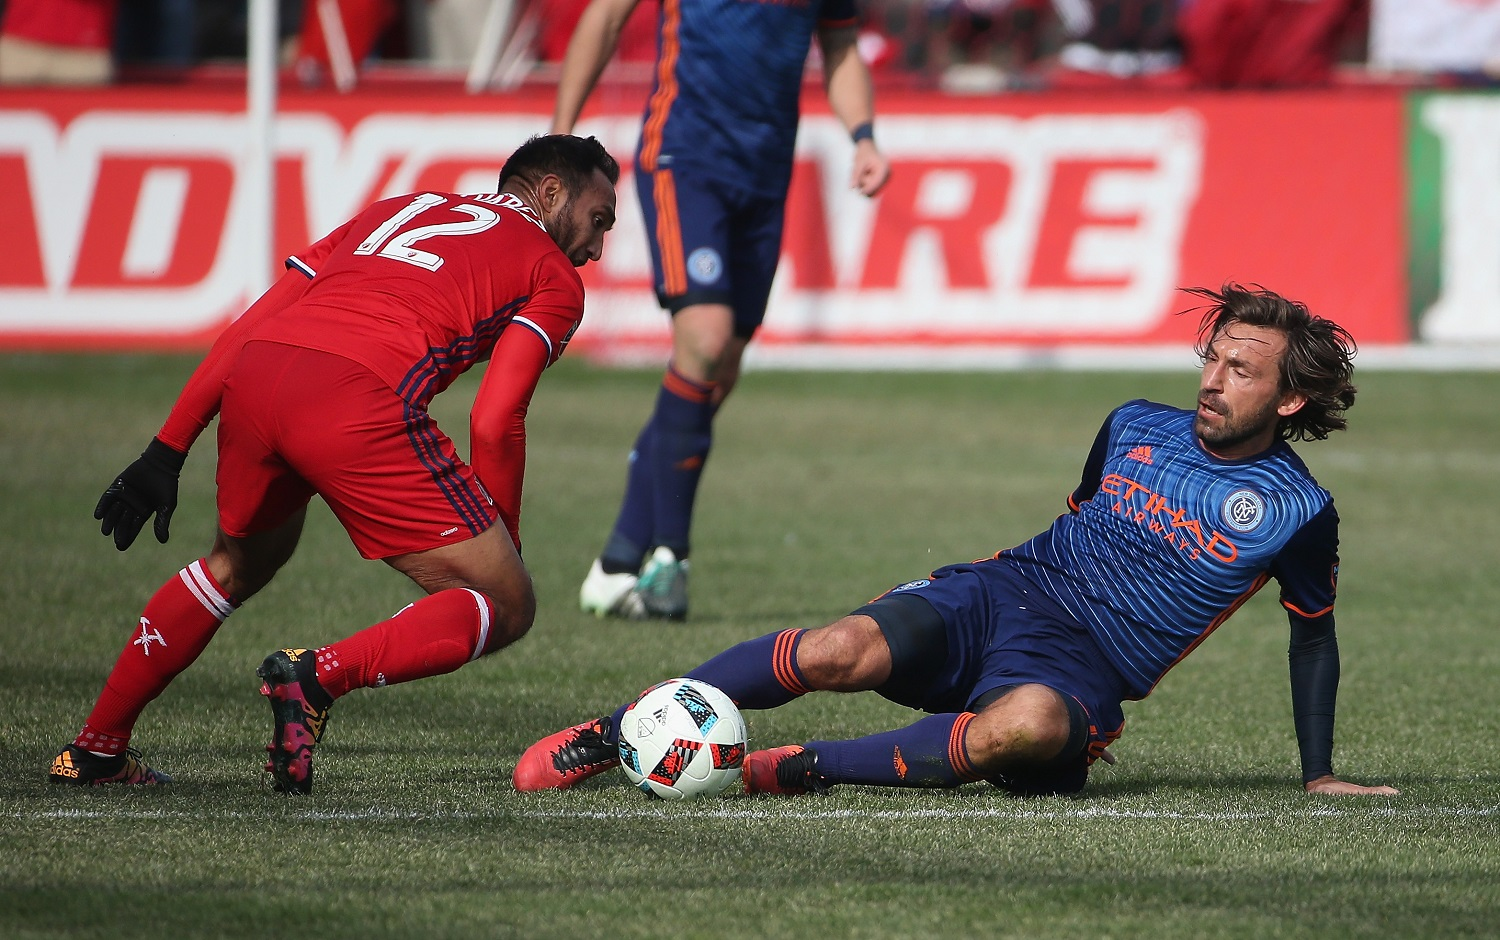 BRIDGEVIEW, IL - MARCH 06: at Toyota Park on March 6, 2016 in Bridgeview, Illinois. The New York City FC defeated the Fire 4-3. (Photo by Jonathan Daniel/Getty Images)